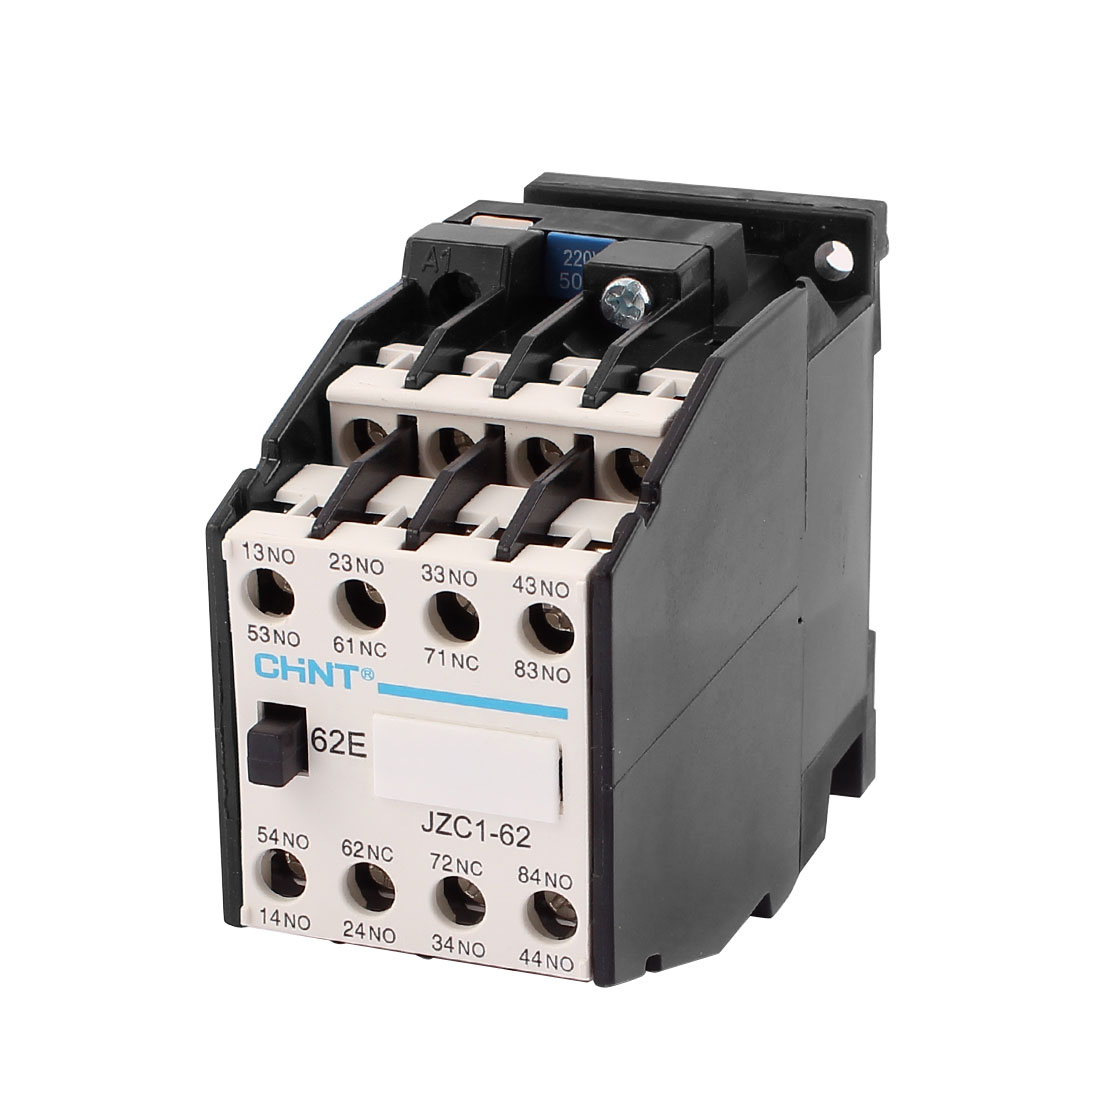 JZC1-62 50Hz 220V Coil Overload Protector 3 Phase 6NO + 2NC AC Contactor Relay